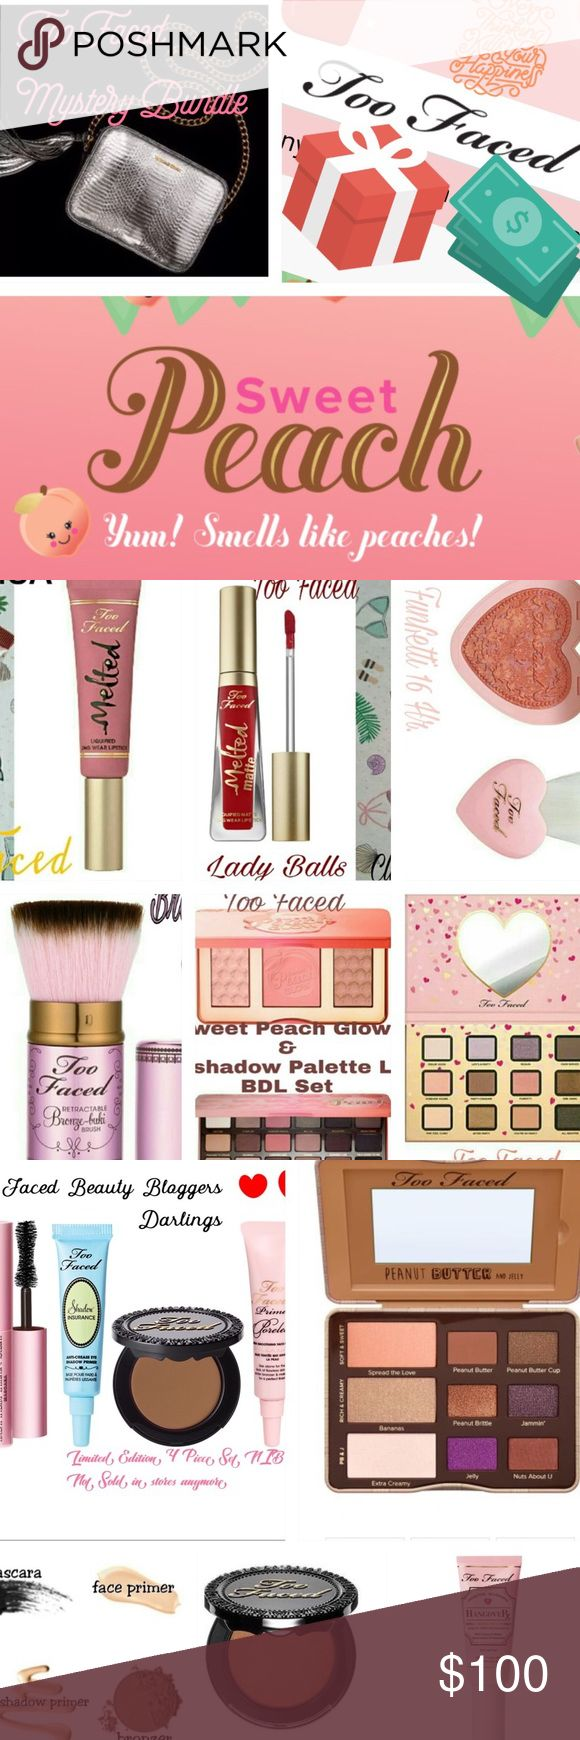 TOO FACED Mystery Bundle  200$ Retail Value Mystery Bundle of all BRAND NEW TOO FACED ITEMS with a retail value of 200$. Pictured items may or may not be included but it gives you an idea of some of my Too Faced Inventory. I have much more that's not even listed yet that may be included. If you are interested, I'm open to hearing your preferred items. Doesn't mean you'll receive them but I will do my very best to at least include 1 item you want in Bundle. Purchase at your own risk. Read…